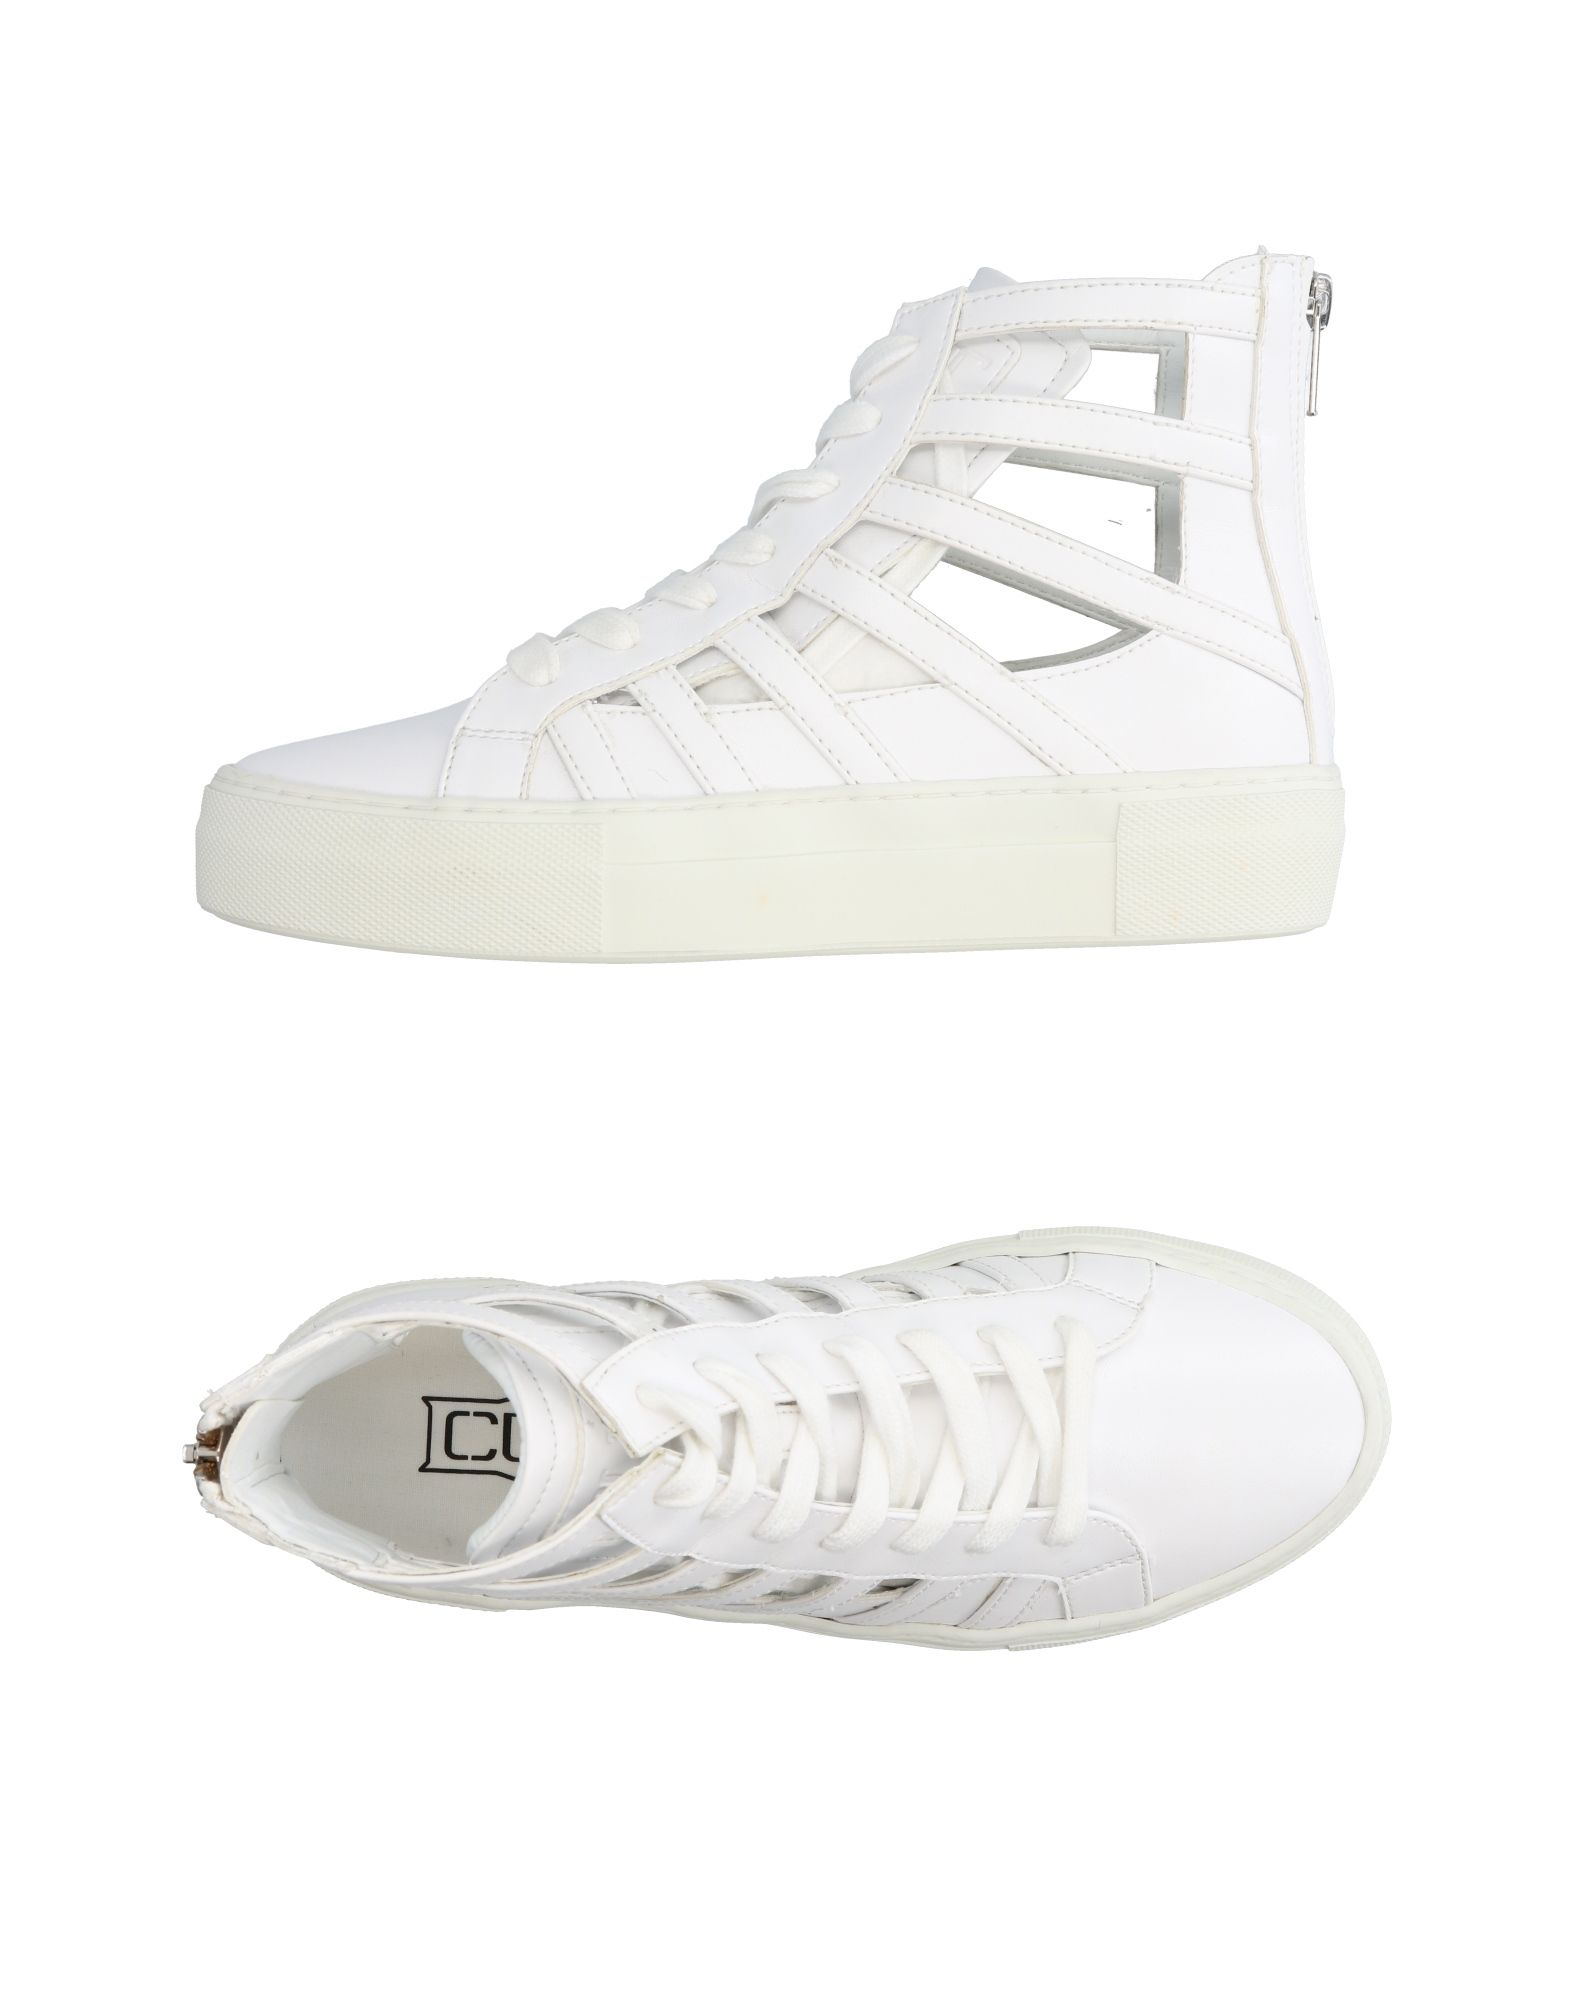 Cult Sneakers United - Women Cult Sneakers online on  United Sneakers Kingdom - 11298079GO 3e264e